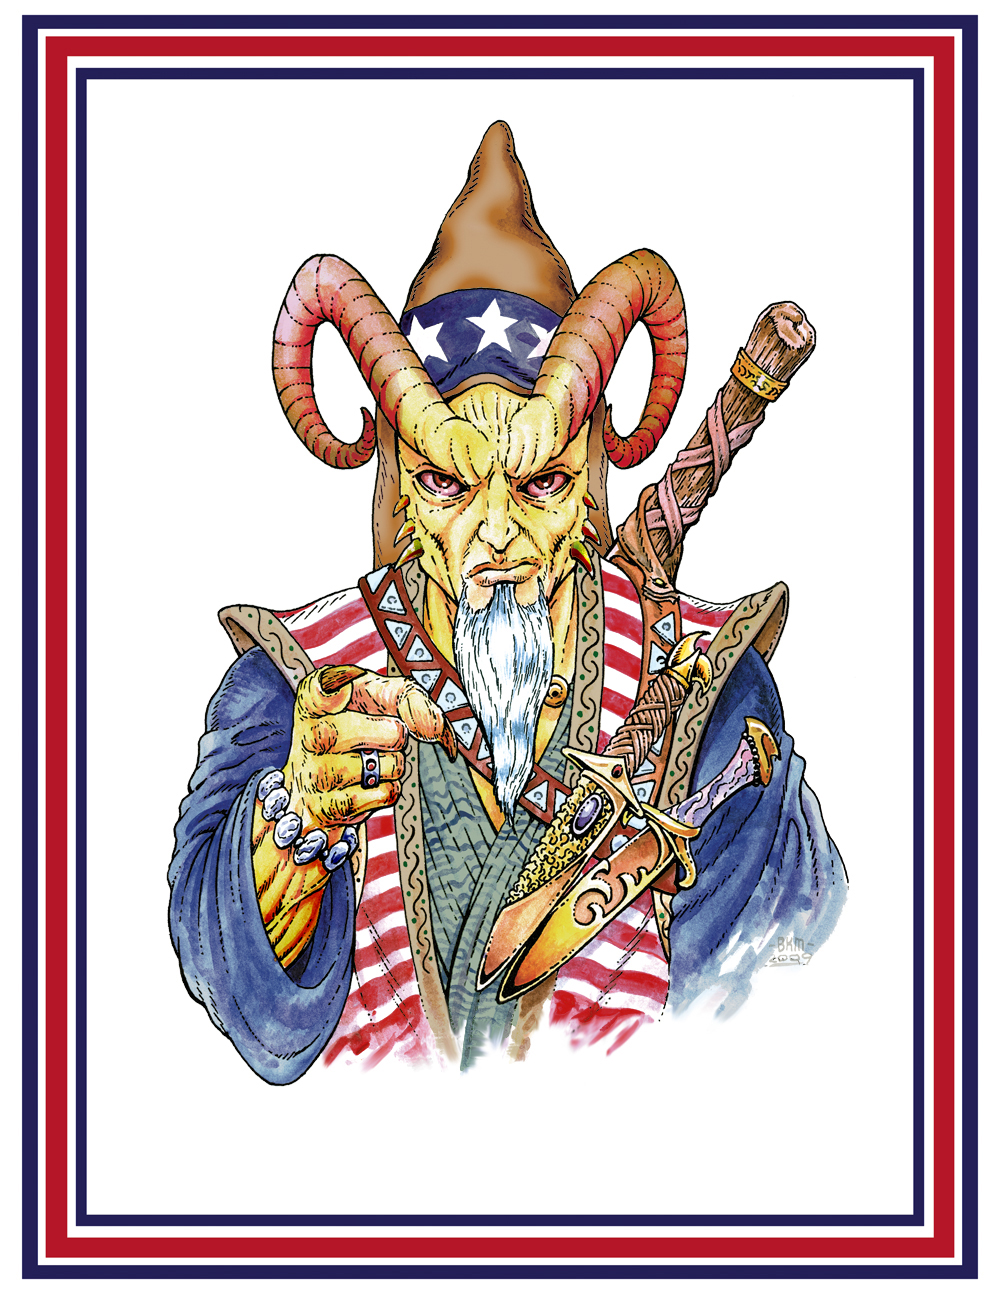 Happy-4th-July-from-Goodman-Games